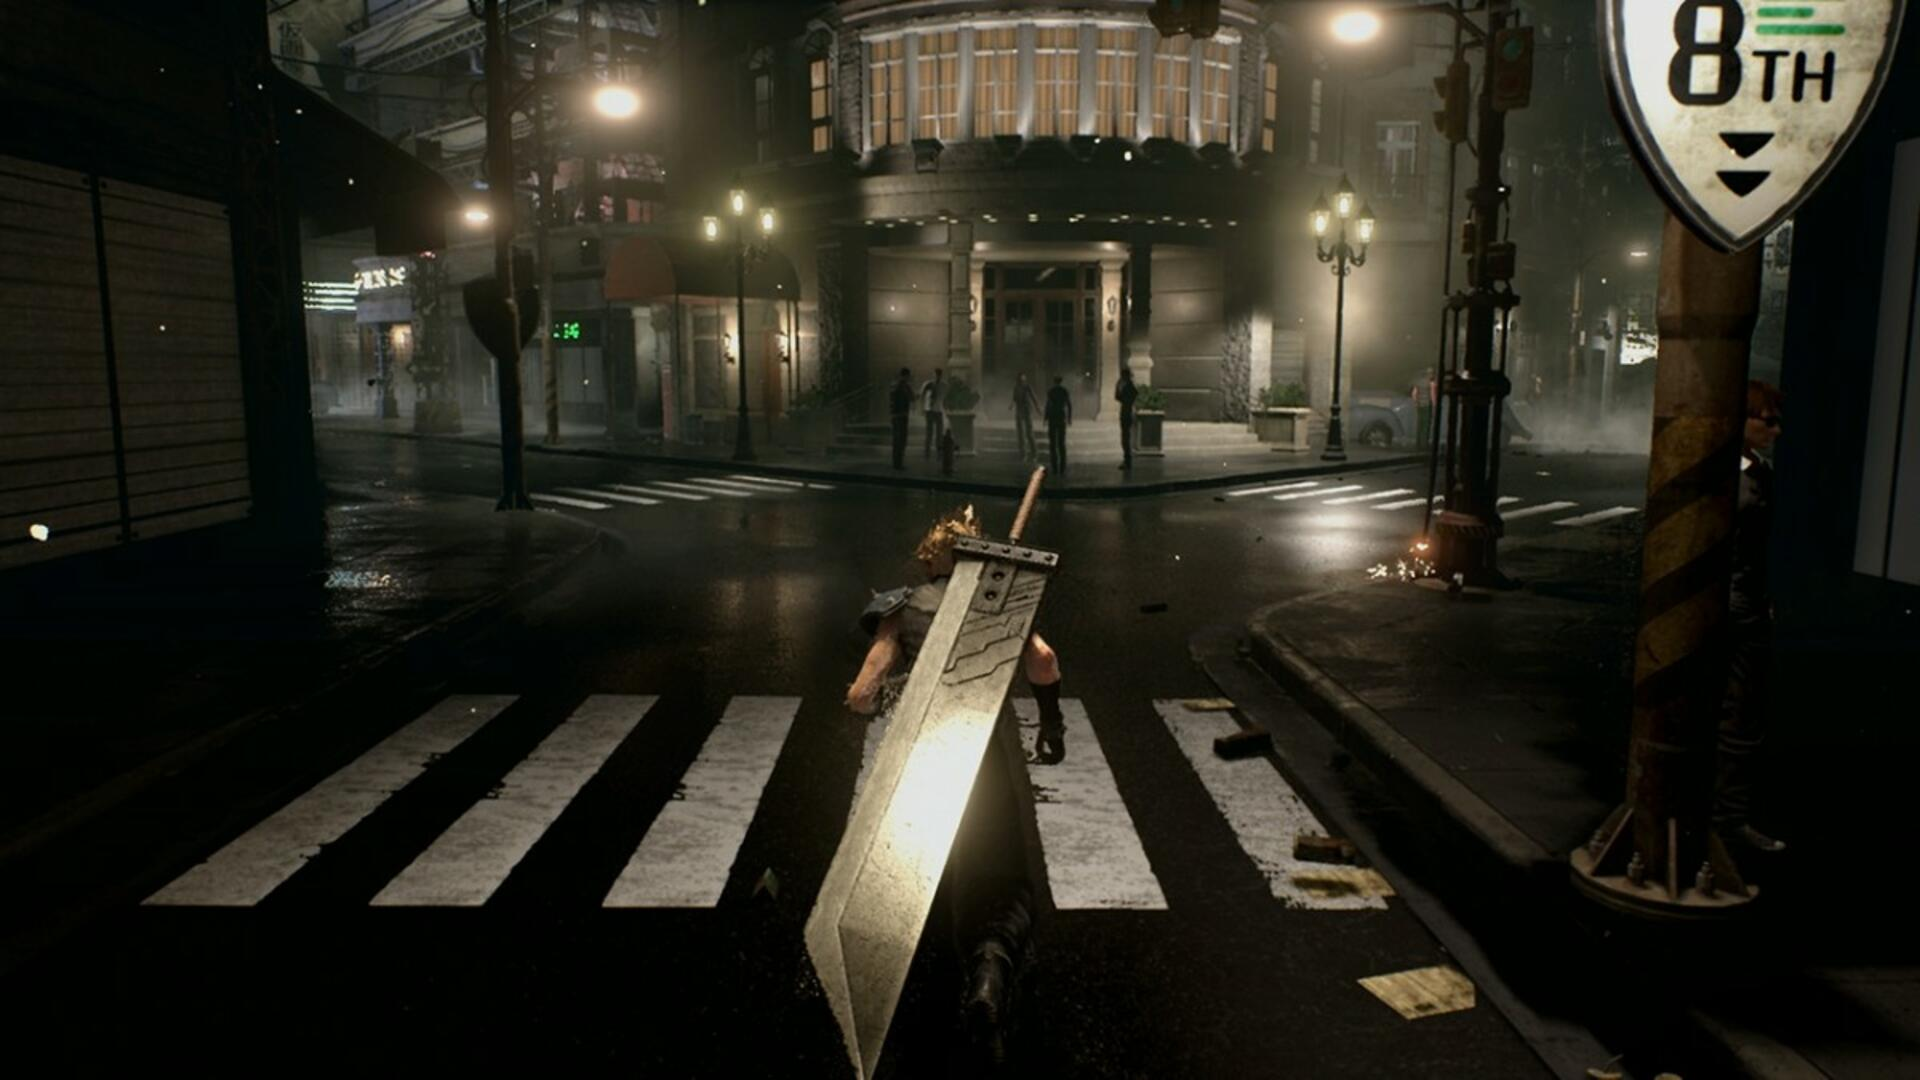 Final Fantasy 7 Remake Gets a Second Director to Work Alongside Tetsuya Nomura